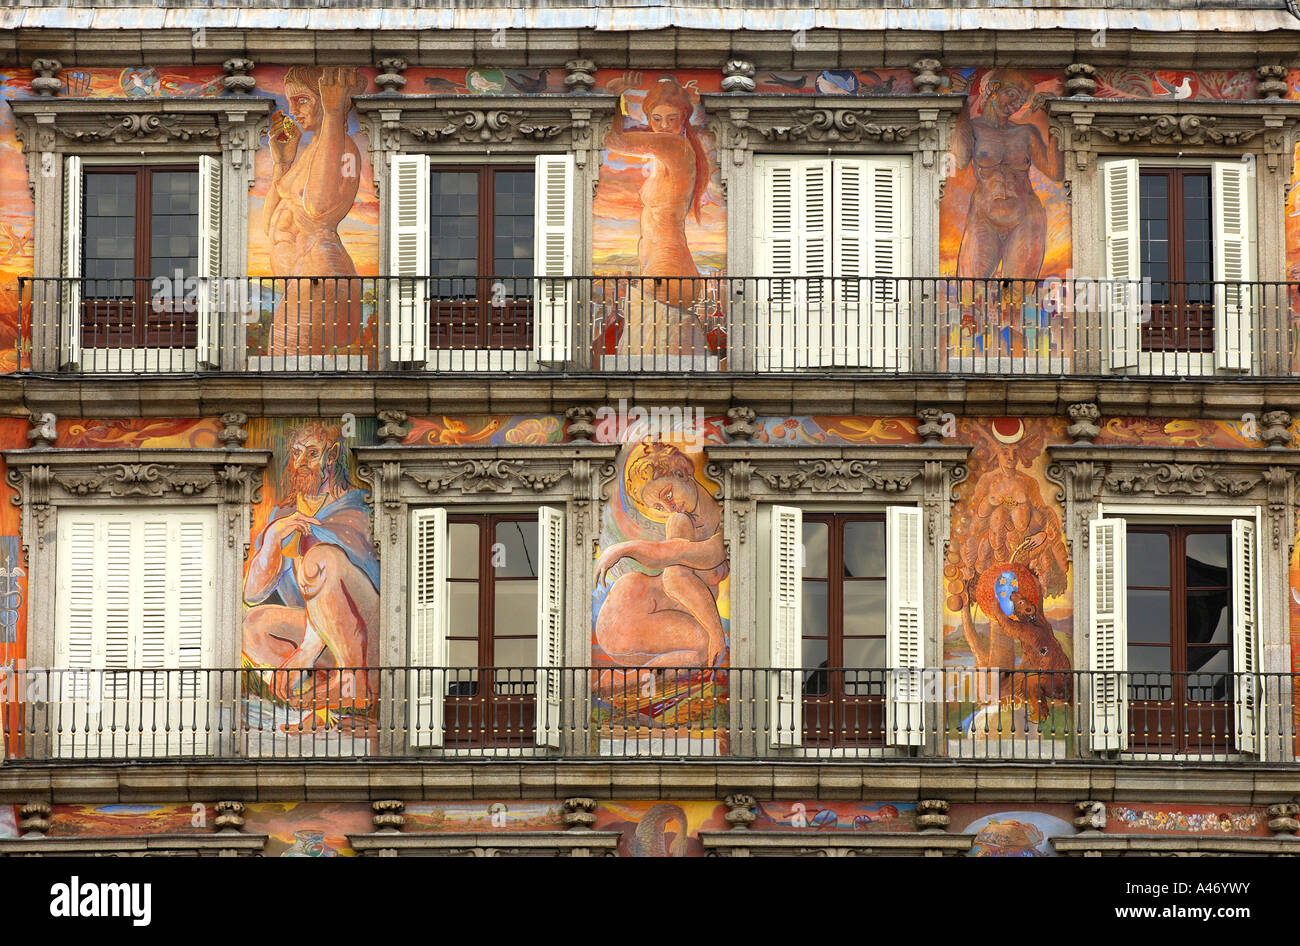 Mural painting casa de la panader a plaza mayor madrid spain stock photo royalty free image - Casa de la panaderia madrid ...